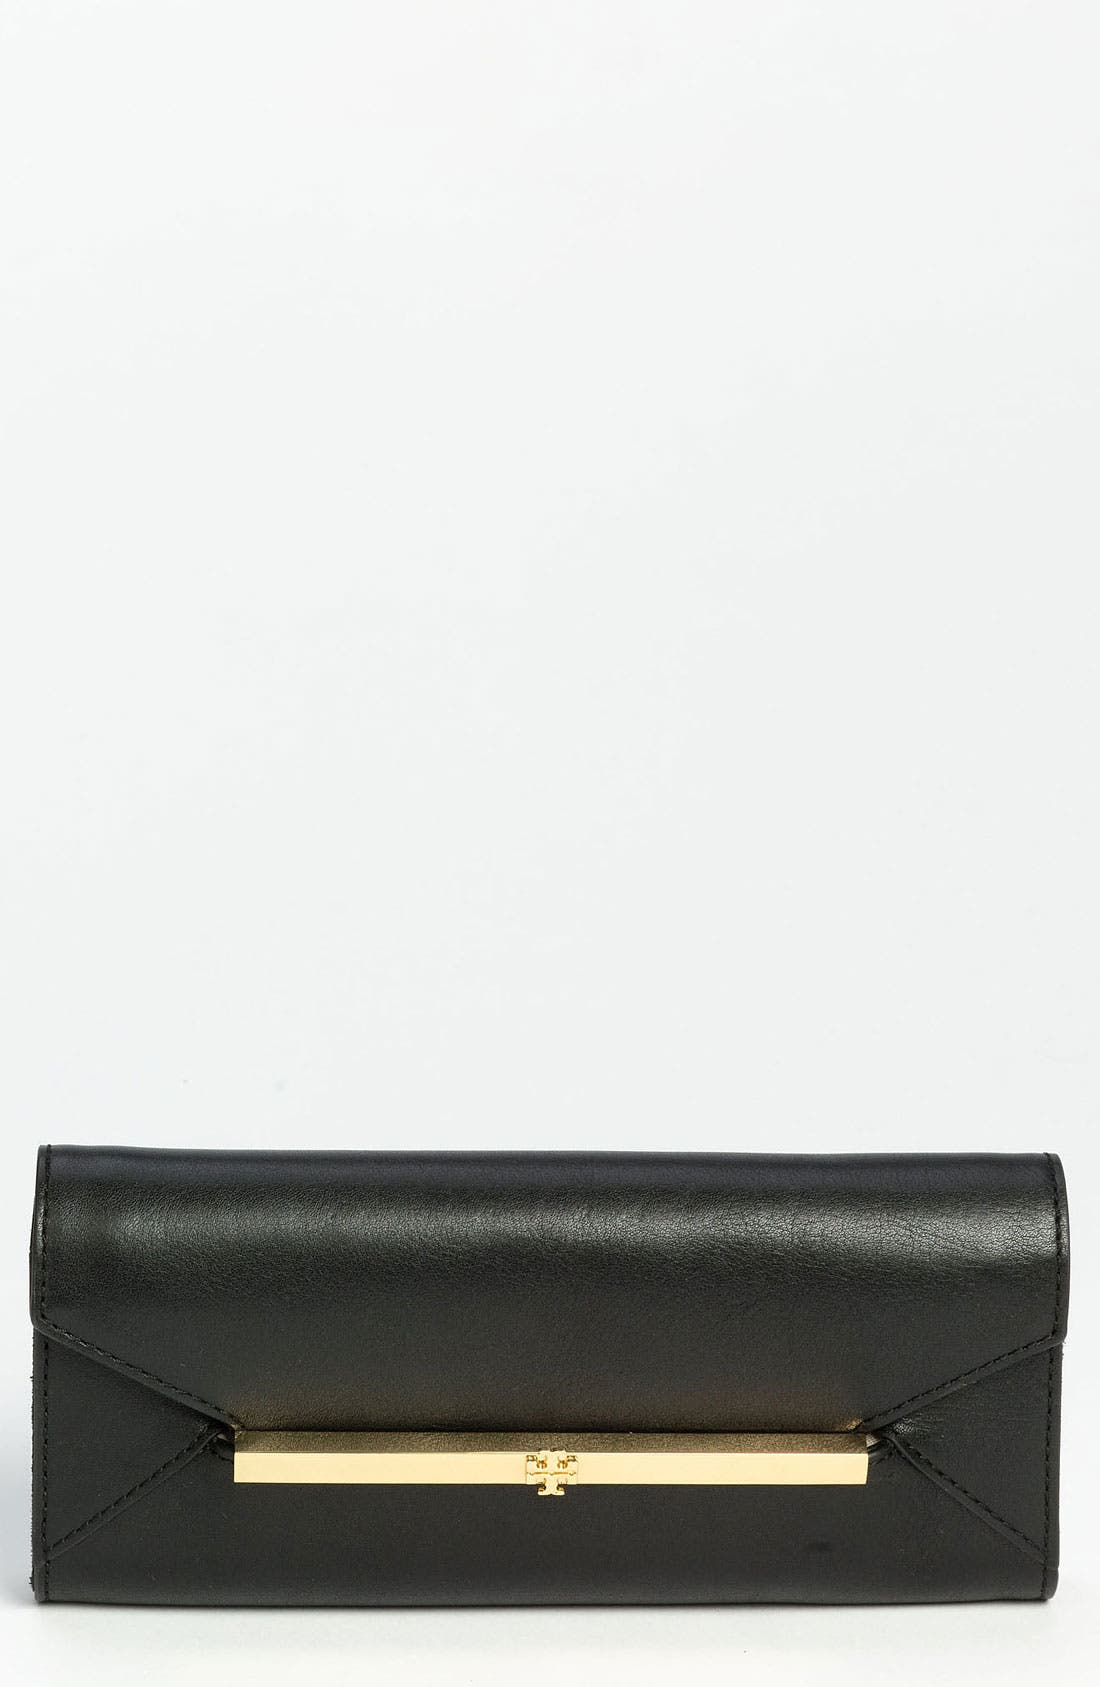 Main Image - Tory Burch 'Penelope' Envelope Clutch